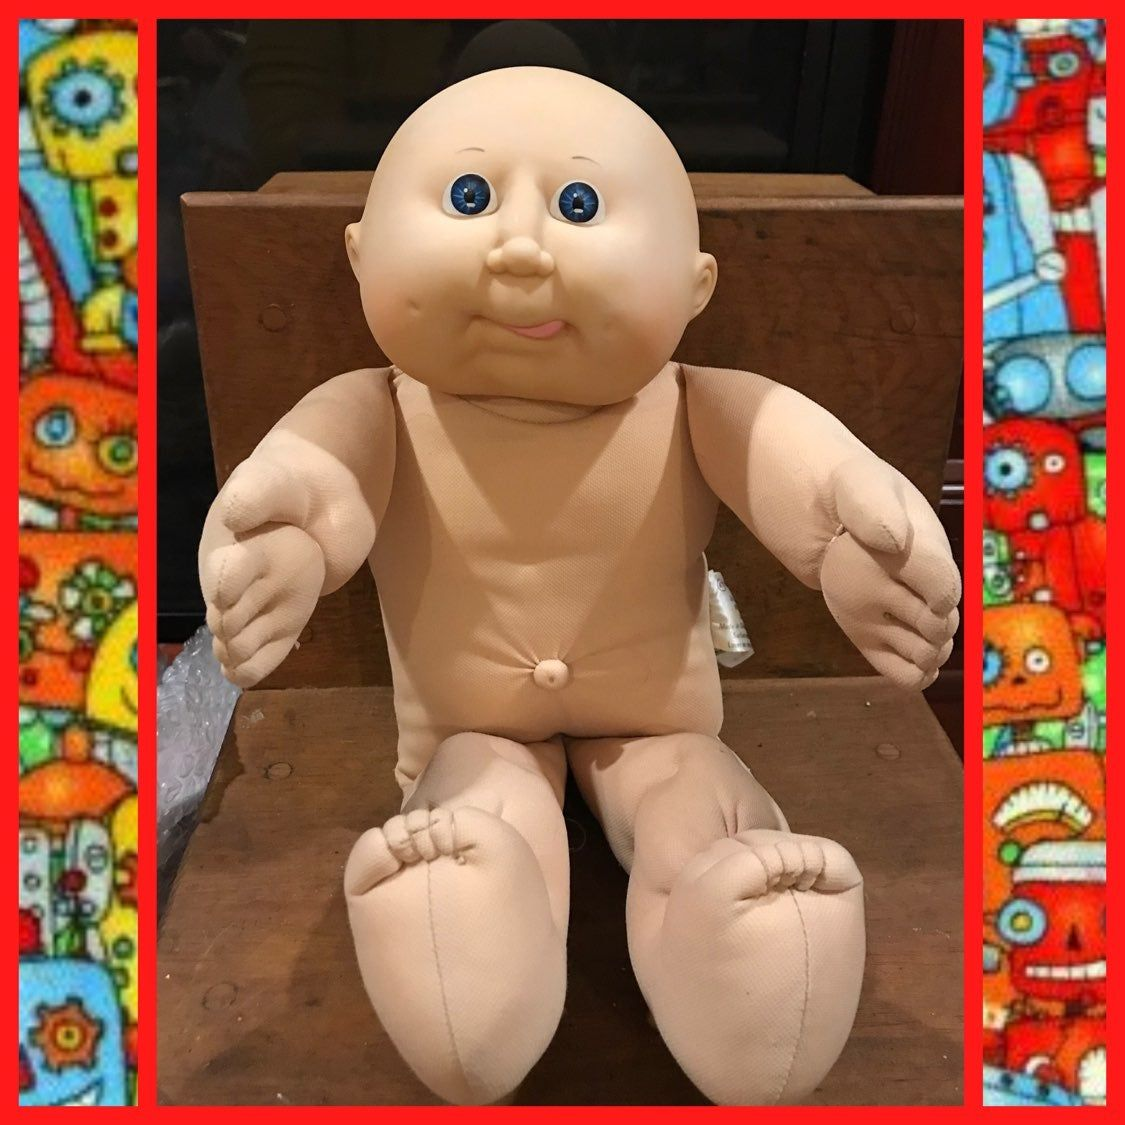 Bald Cabbage Patch Kid Headmold 11 Blue Eyes No Clothes Or Shoes Perfect Condition 16 Tall Free Sh Patch Kids Cabbage Patch Kids Dolls Cabbage Patch Kids